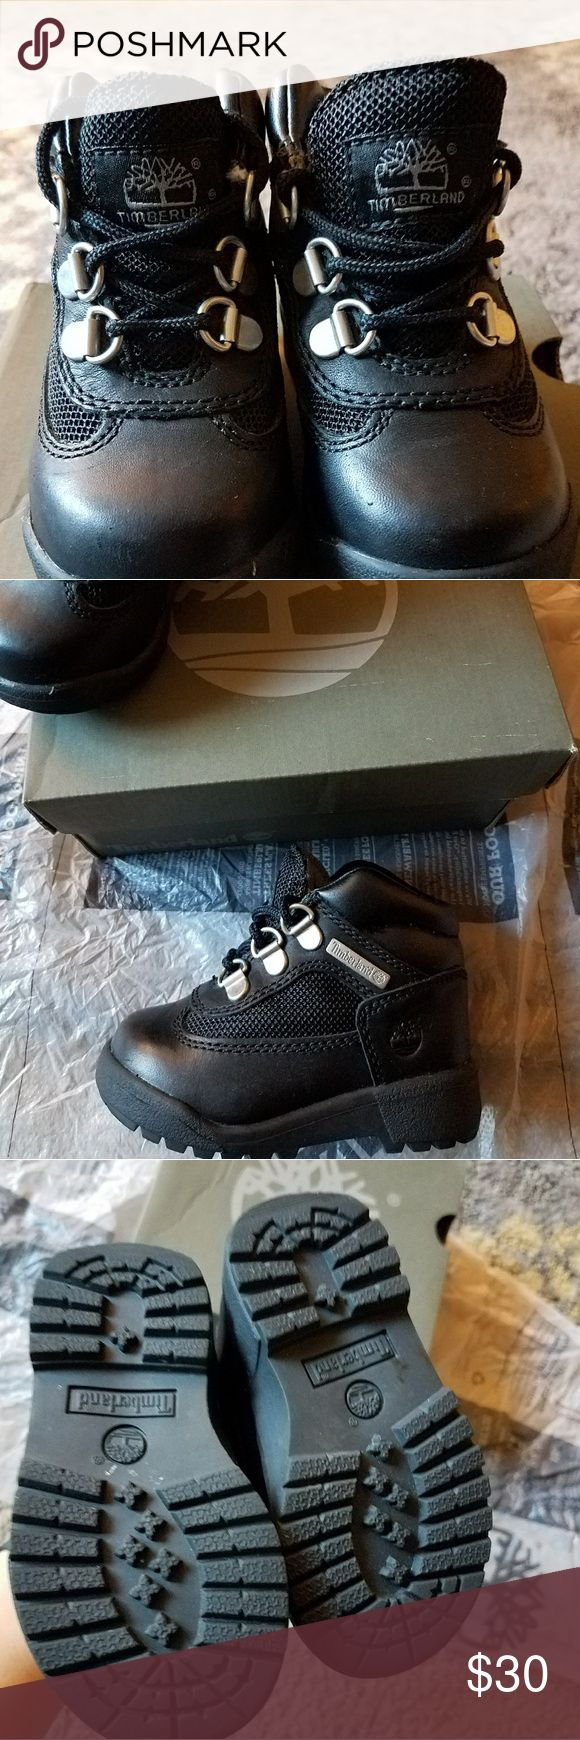 Toddler Timberland's boots Black toddler boots size 6 Like new Timberland Shoes Boots